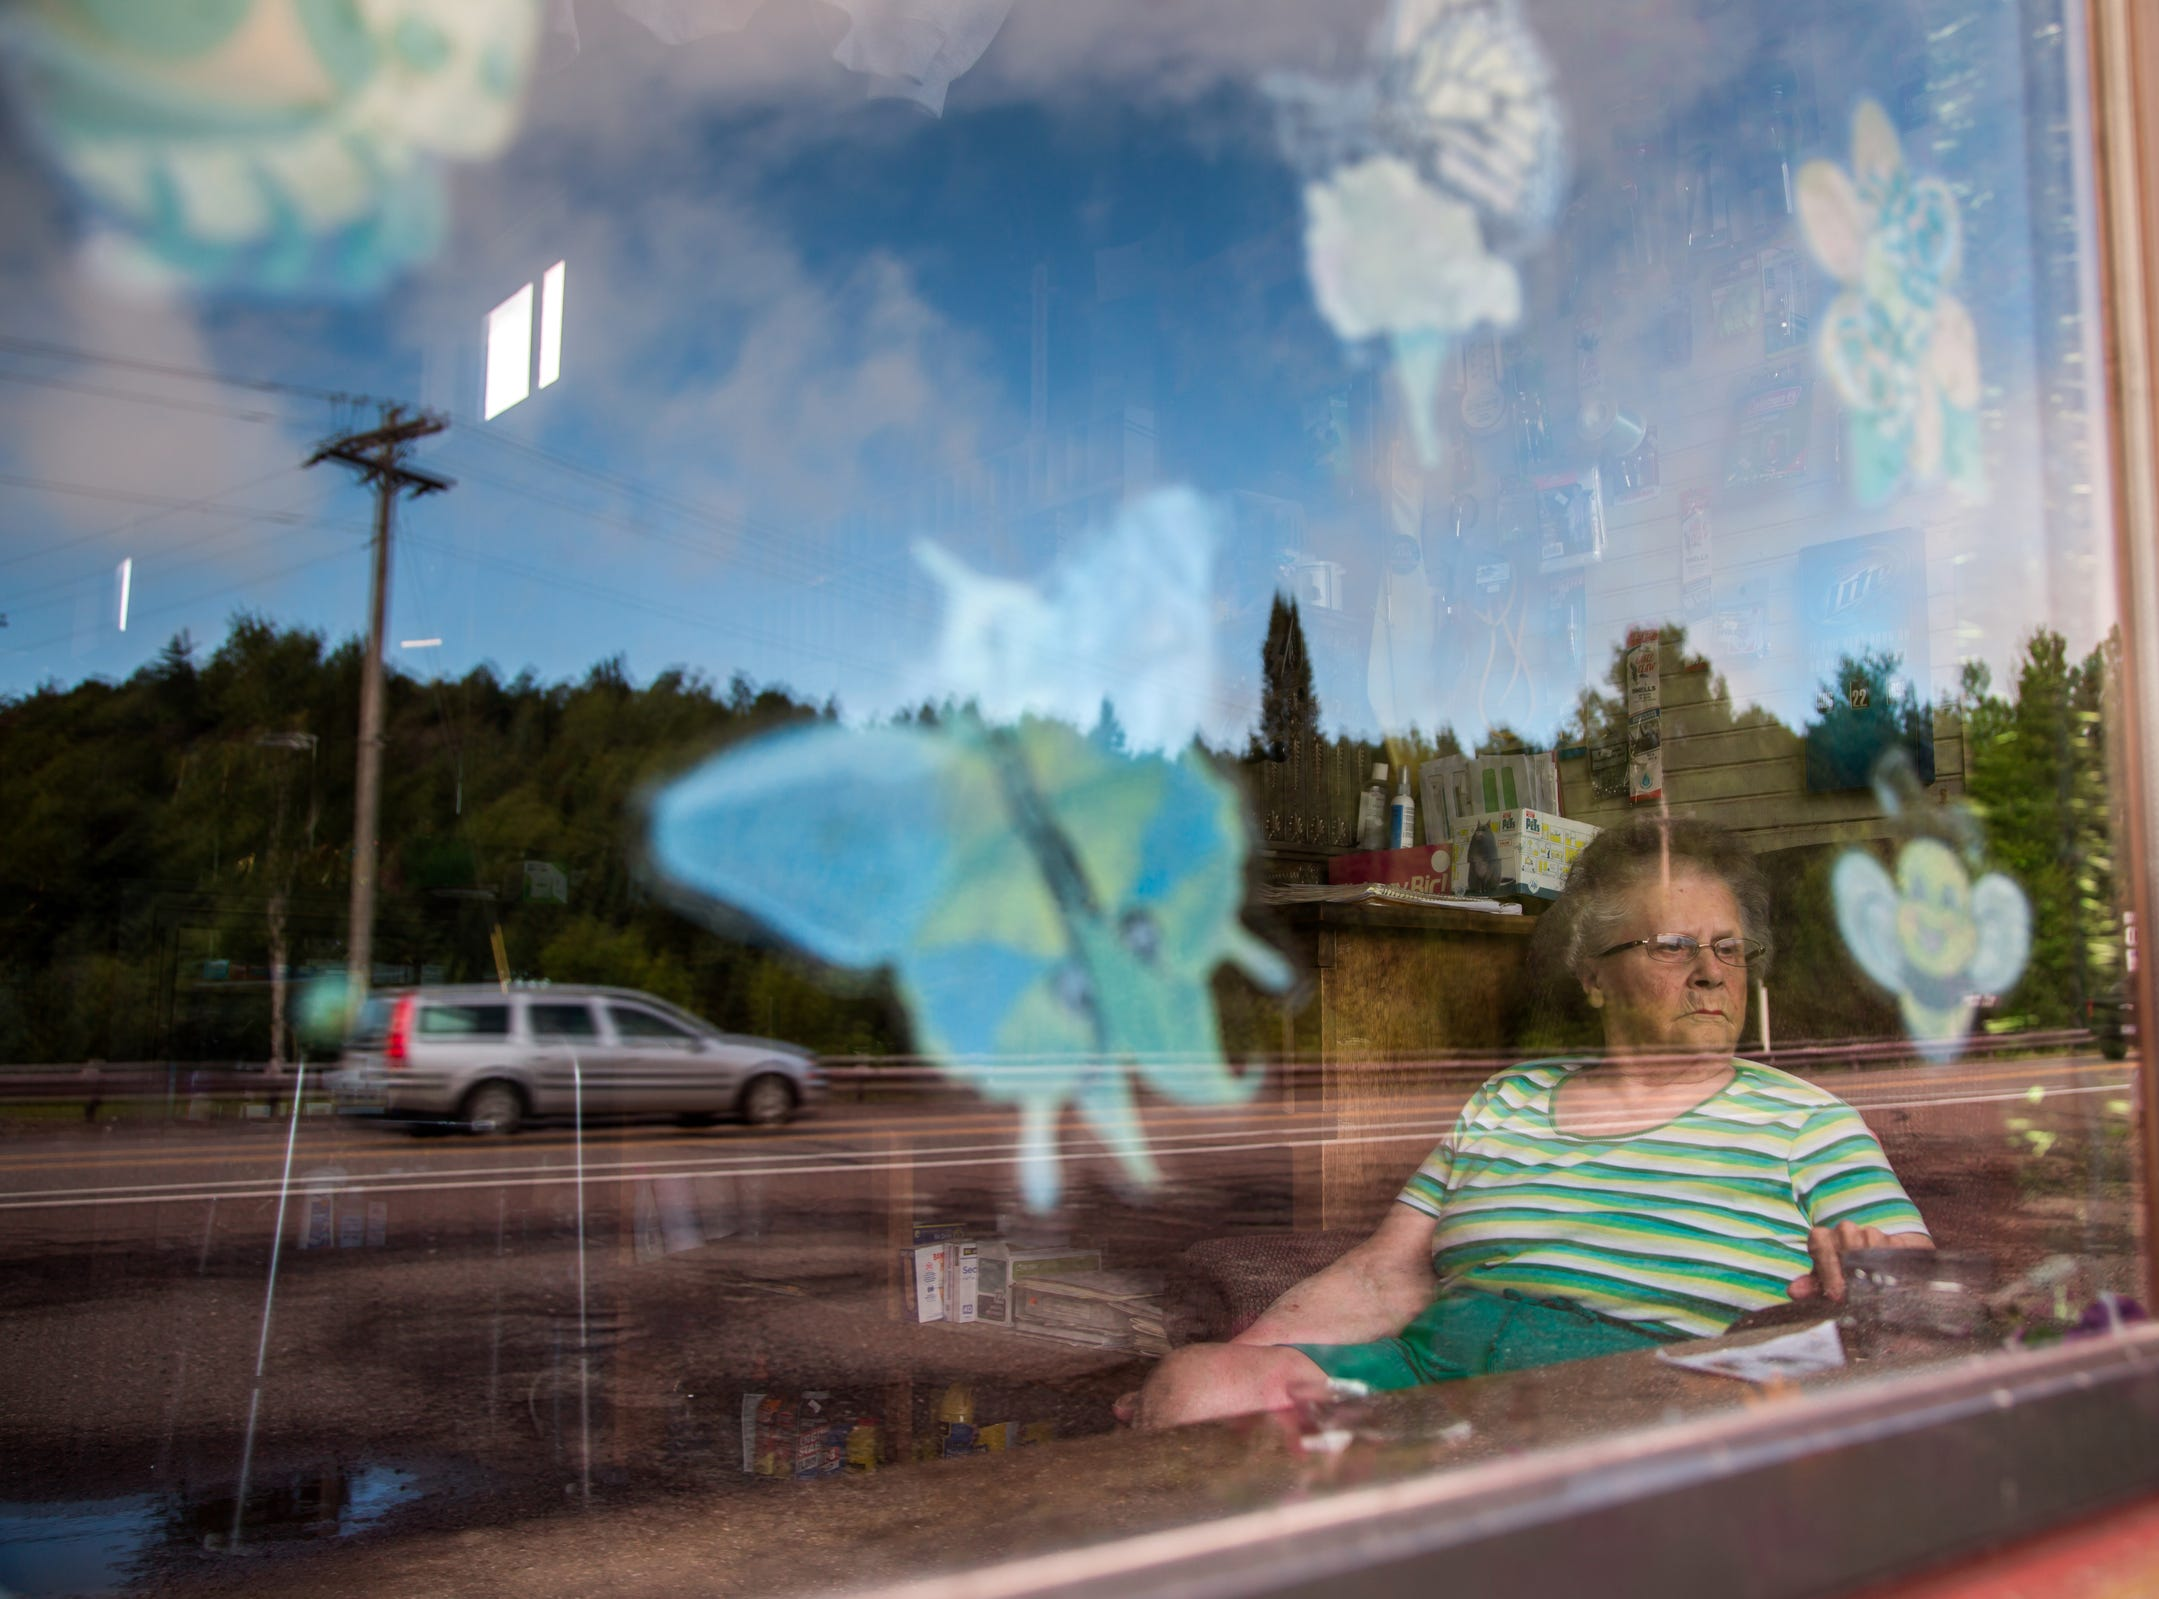 "Arbutus Peterson, 84, of Phoenix watches traffic go by outside of the old-fashioned general store named Phoenix Store built in 1873 that she runs by herself on Tuesday, August 22, 2017 in Michigan's Upper Peninsula.  Peterson spends eleven  hours-a-day seven days-a-week in her chair waiting for customers and waiving at those she knows as they pass by. ""I see people all day long so I don't think anything about living in a town with that few people in it,"" Peterson said who owns the only store in town."